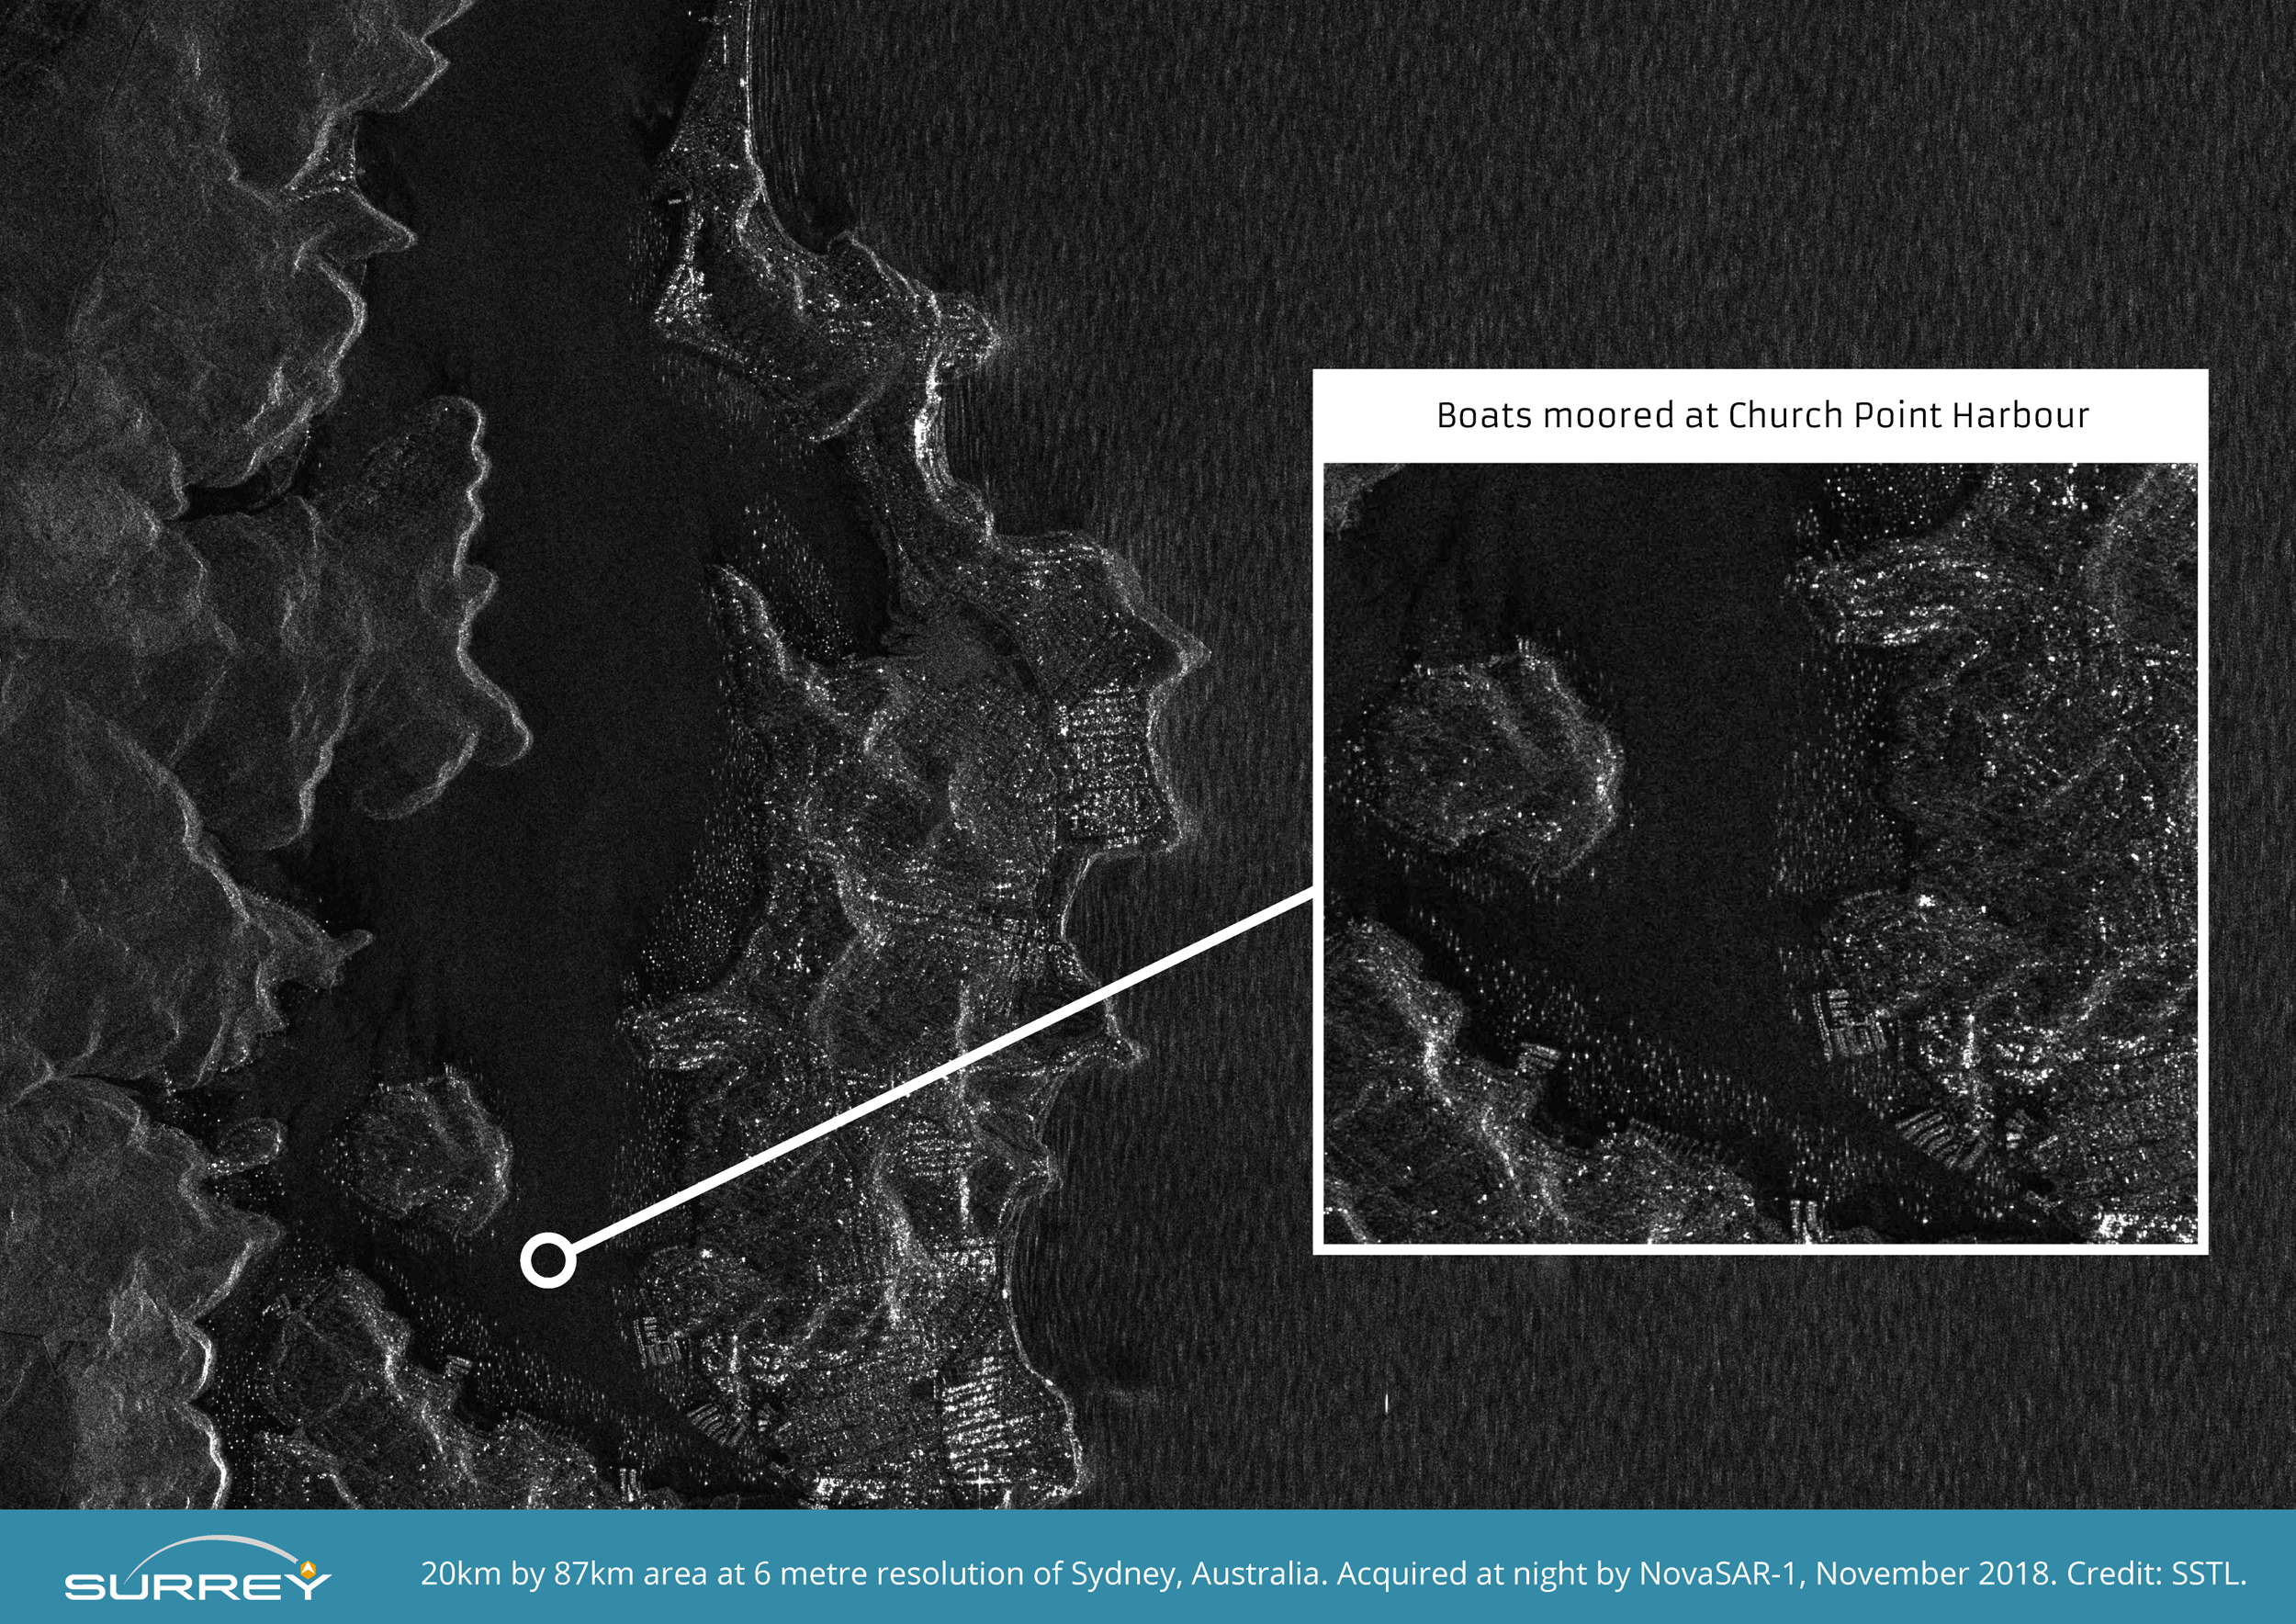 NovaSAR-1 S-Band Radar image of Church Point Harbour, near Sydney, taken at night at 6 metre resolution.  Image zoomed and compressed from original file.  Credit SSTL.